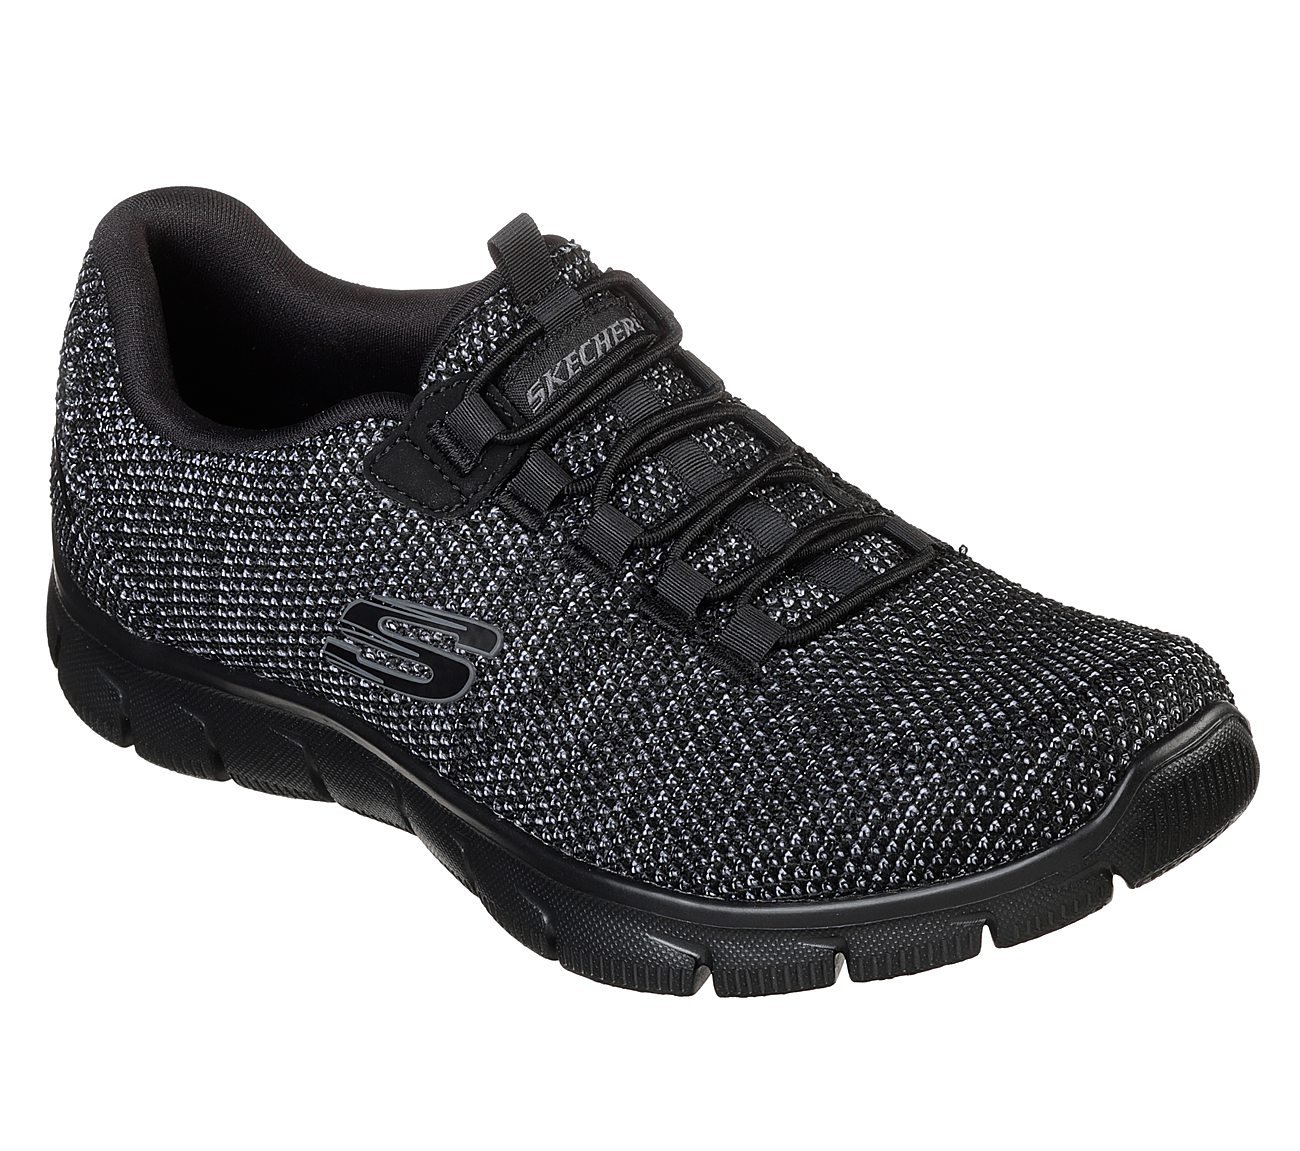 Skechers Sport Women's Empire Fashion Sneaker B07FMKW2HF 9 (B)M US|Black Knit